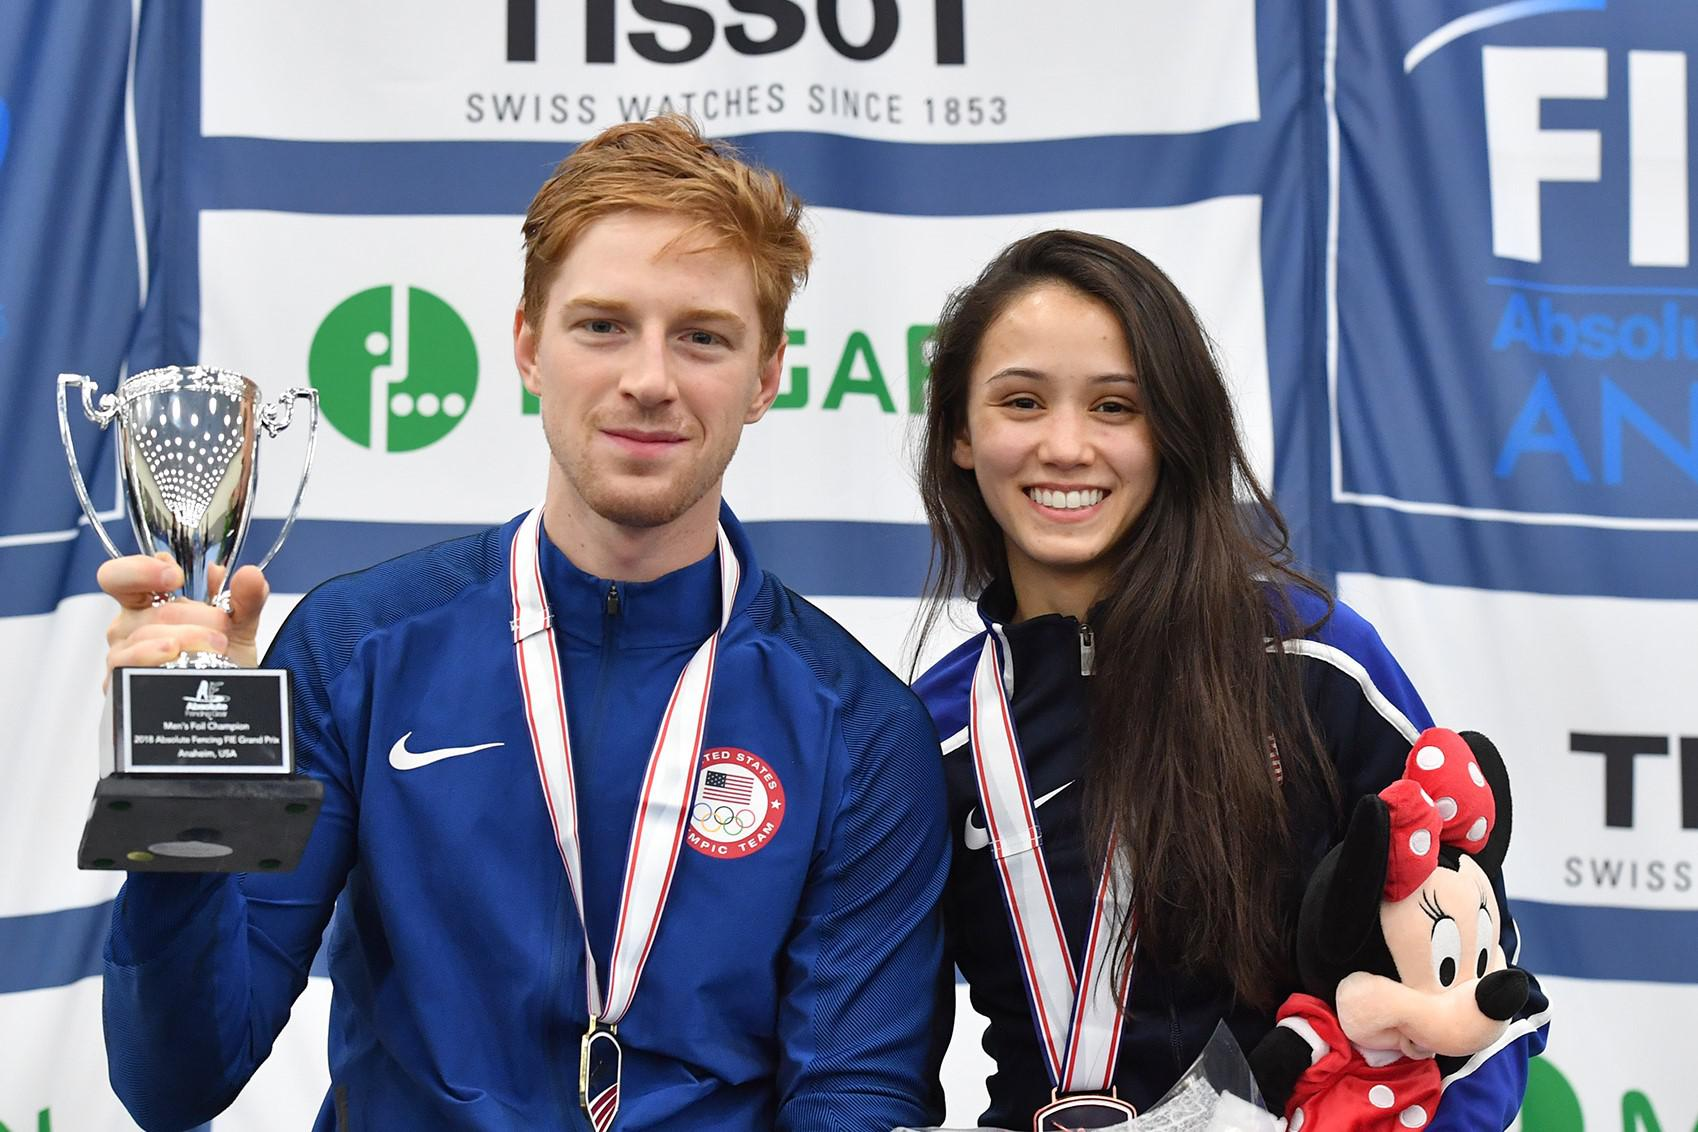 Race Imboden And Lee Kiefer Win Grand Prix Gold And Bronze